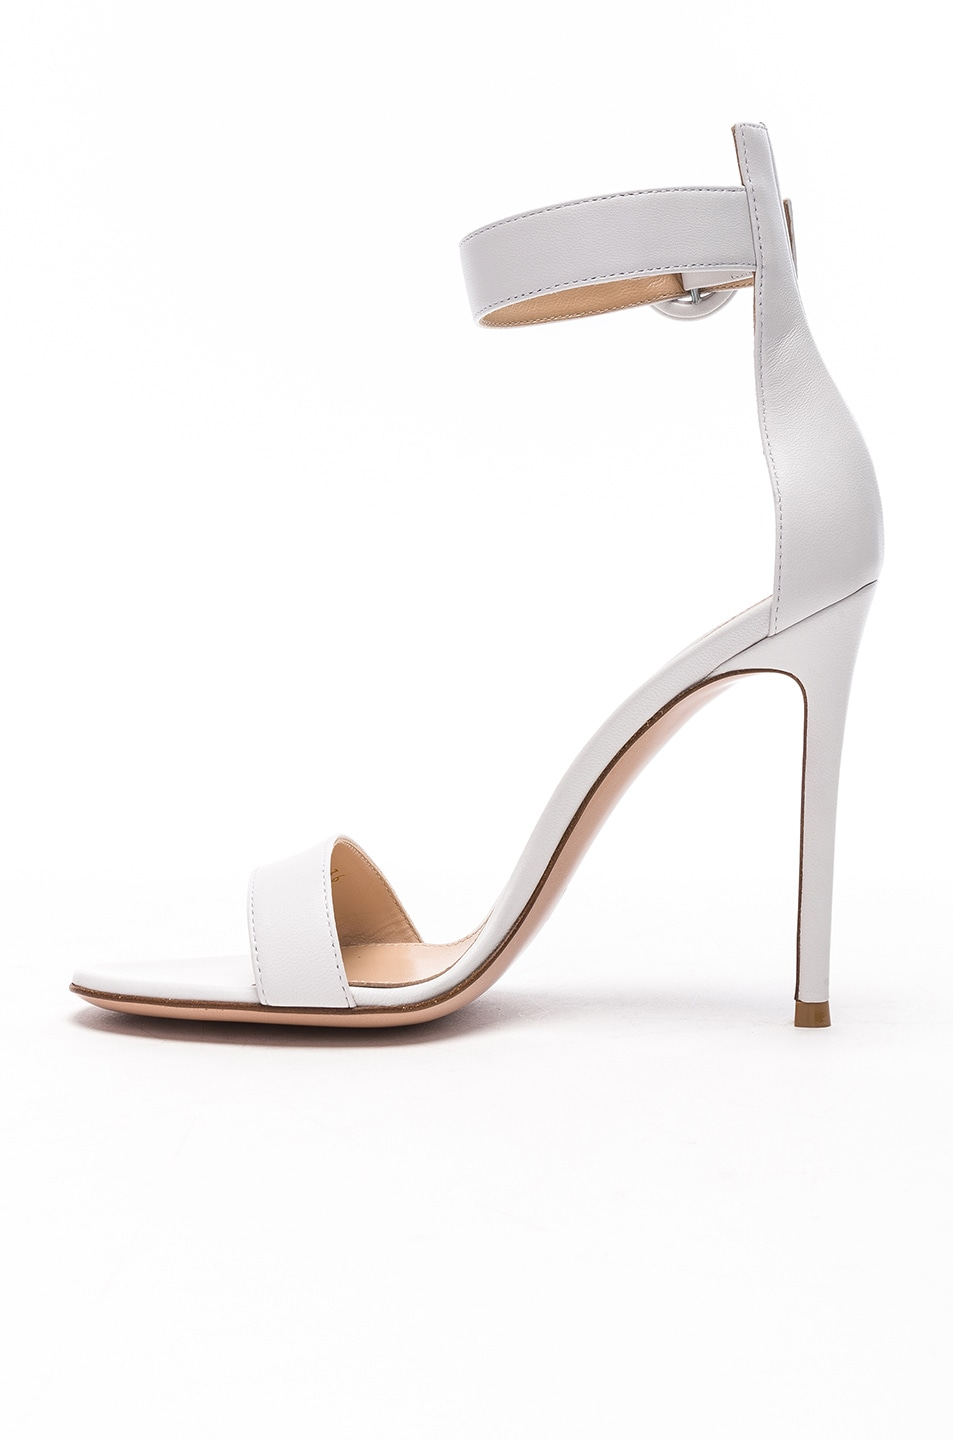 Image 5 of Gianvito Rossi Leather Portofino Heels in White